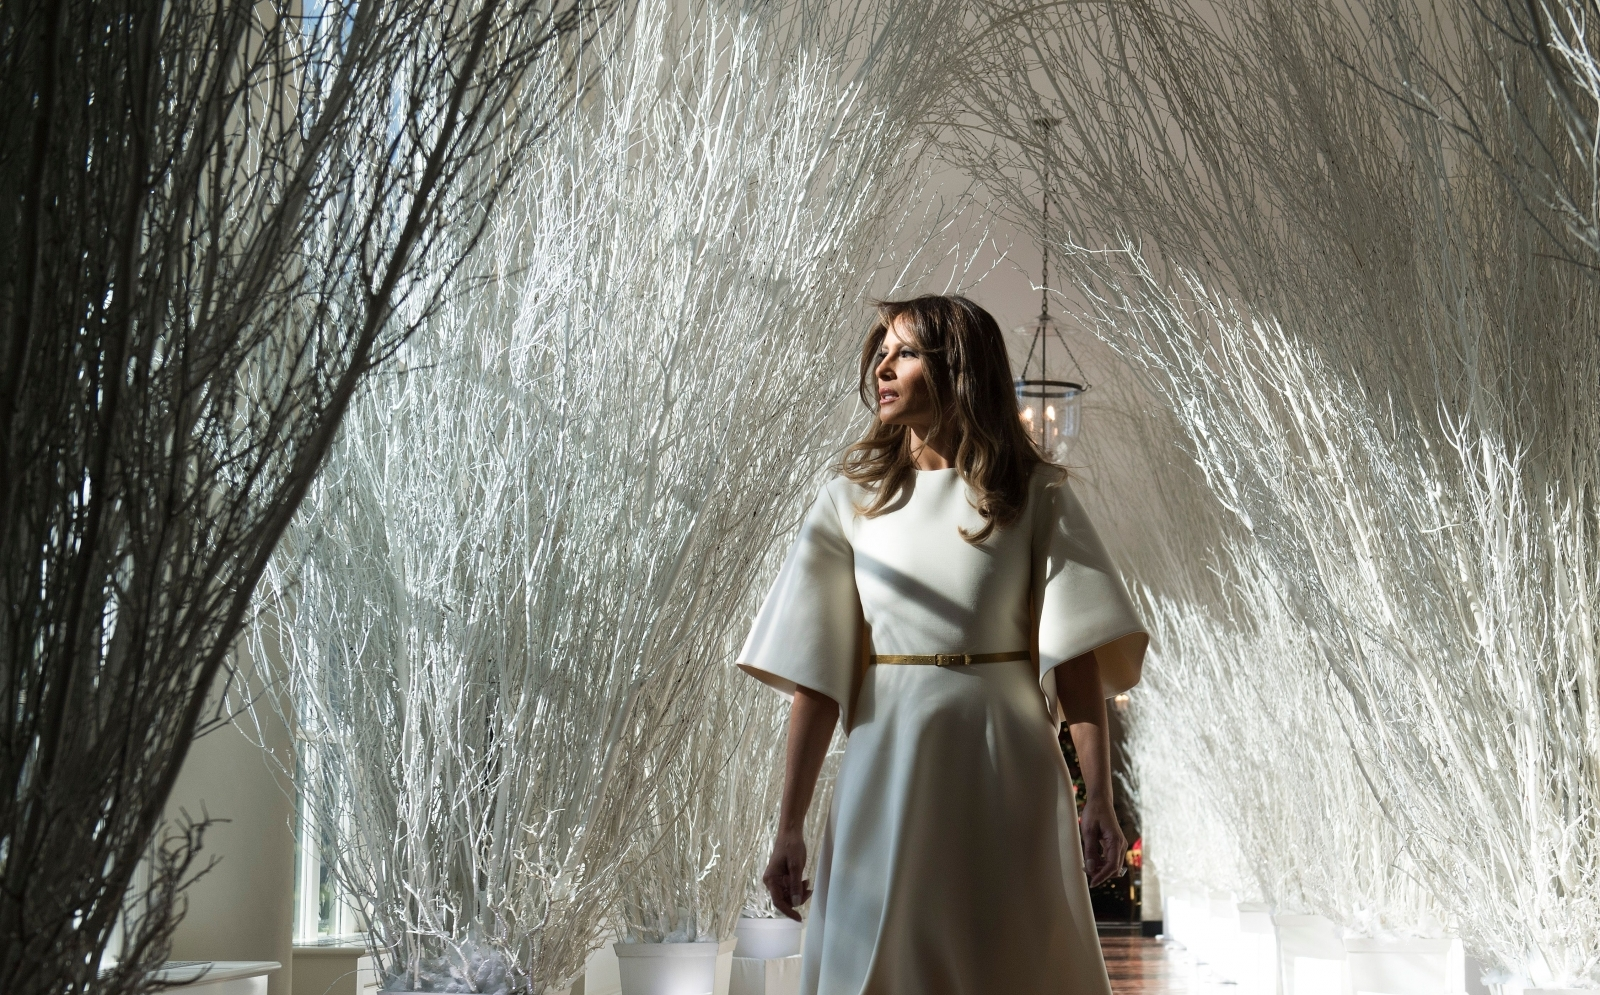 Melania Trump's Christmas decorations include hallway with 'super creepy funeral' vibe